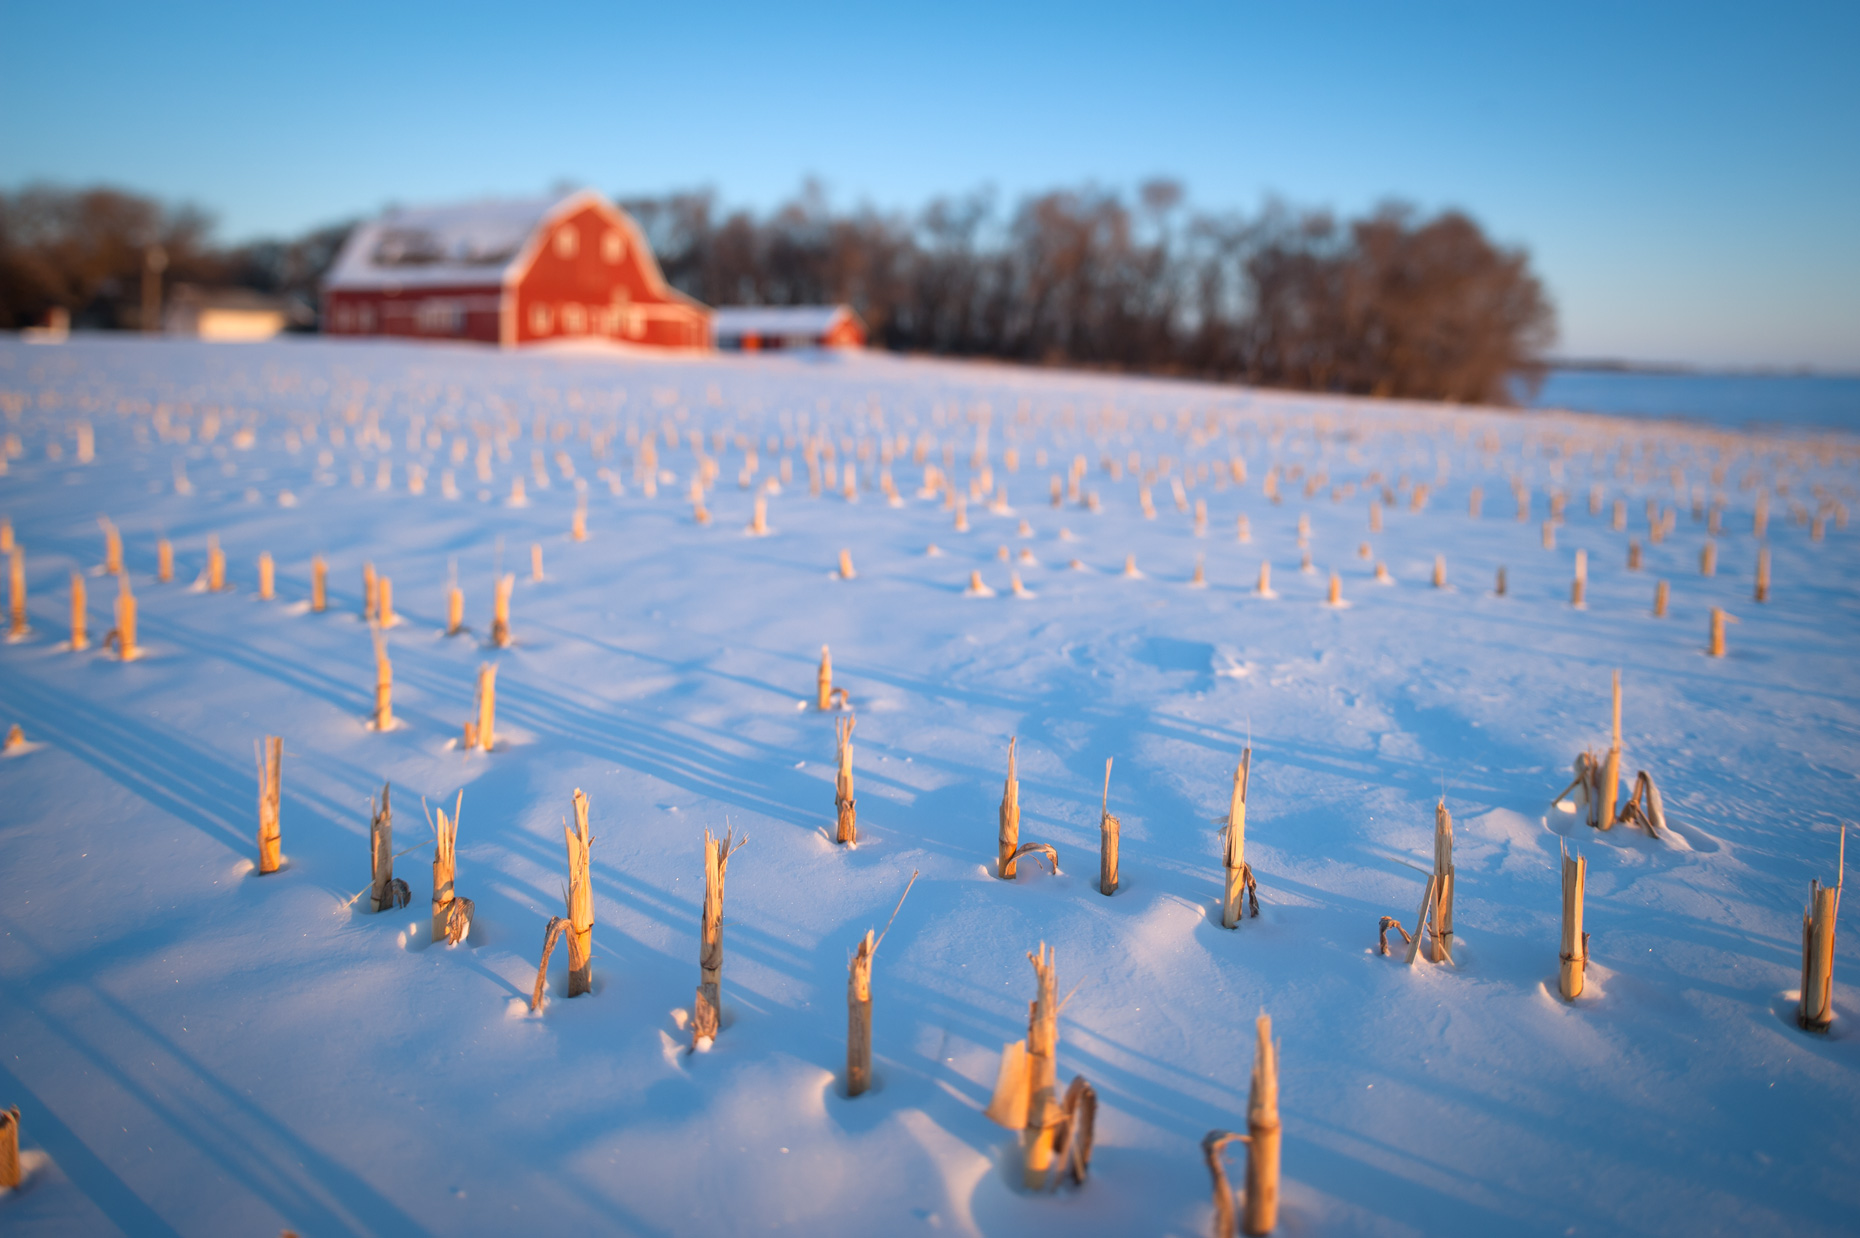 Cornfield and Snow Photography in Winter